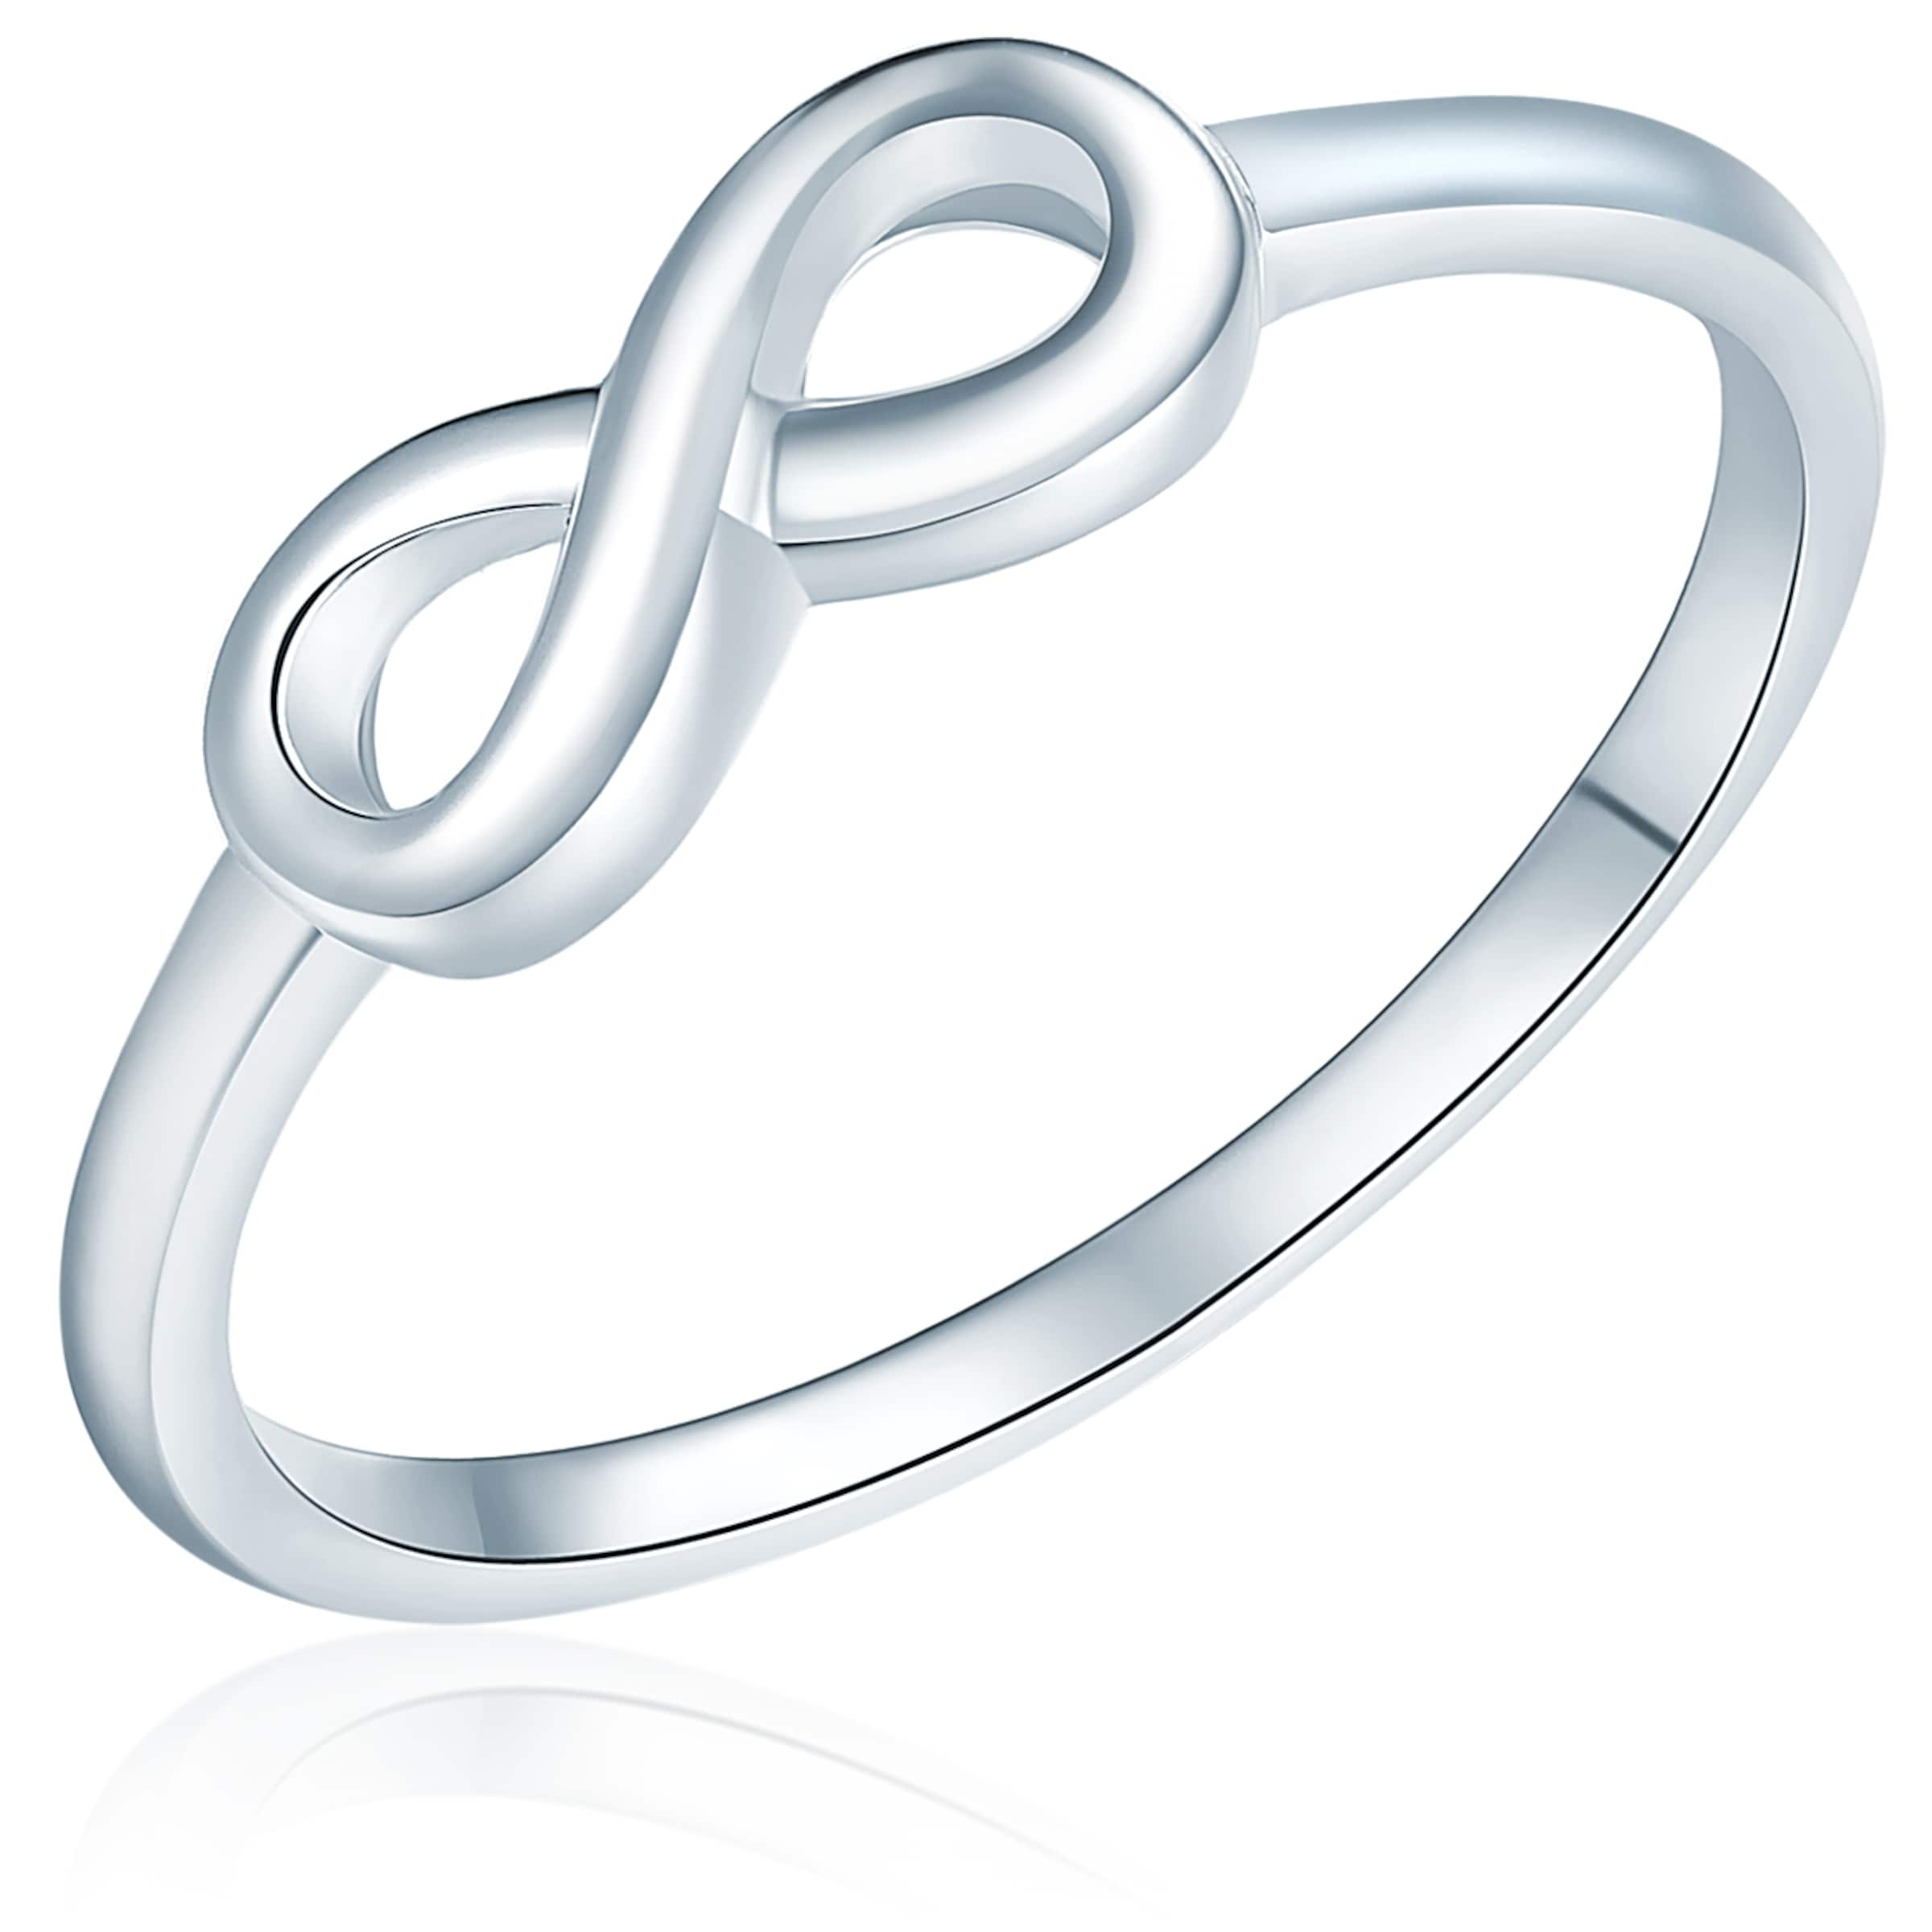 Donata Rafaela Rafaela In Donata Rafaela Silber Silber Ring In Ring Donata Ring 76fgvIbyY